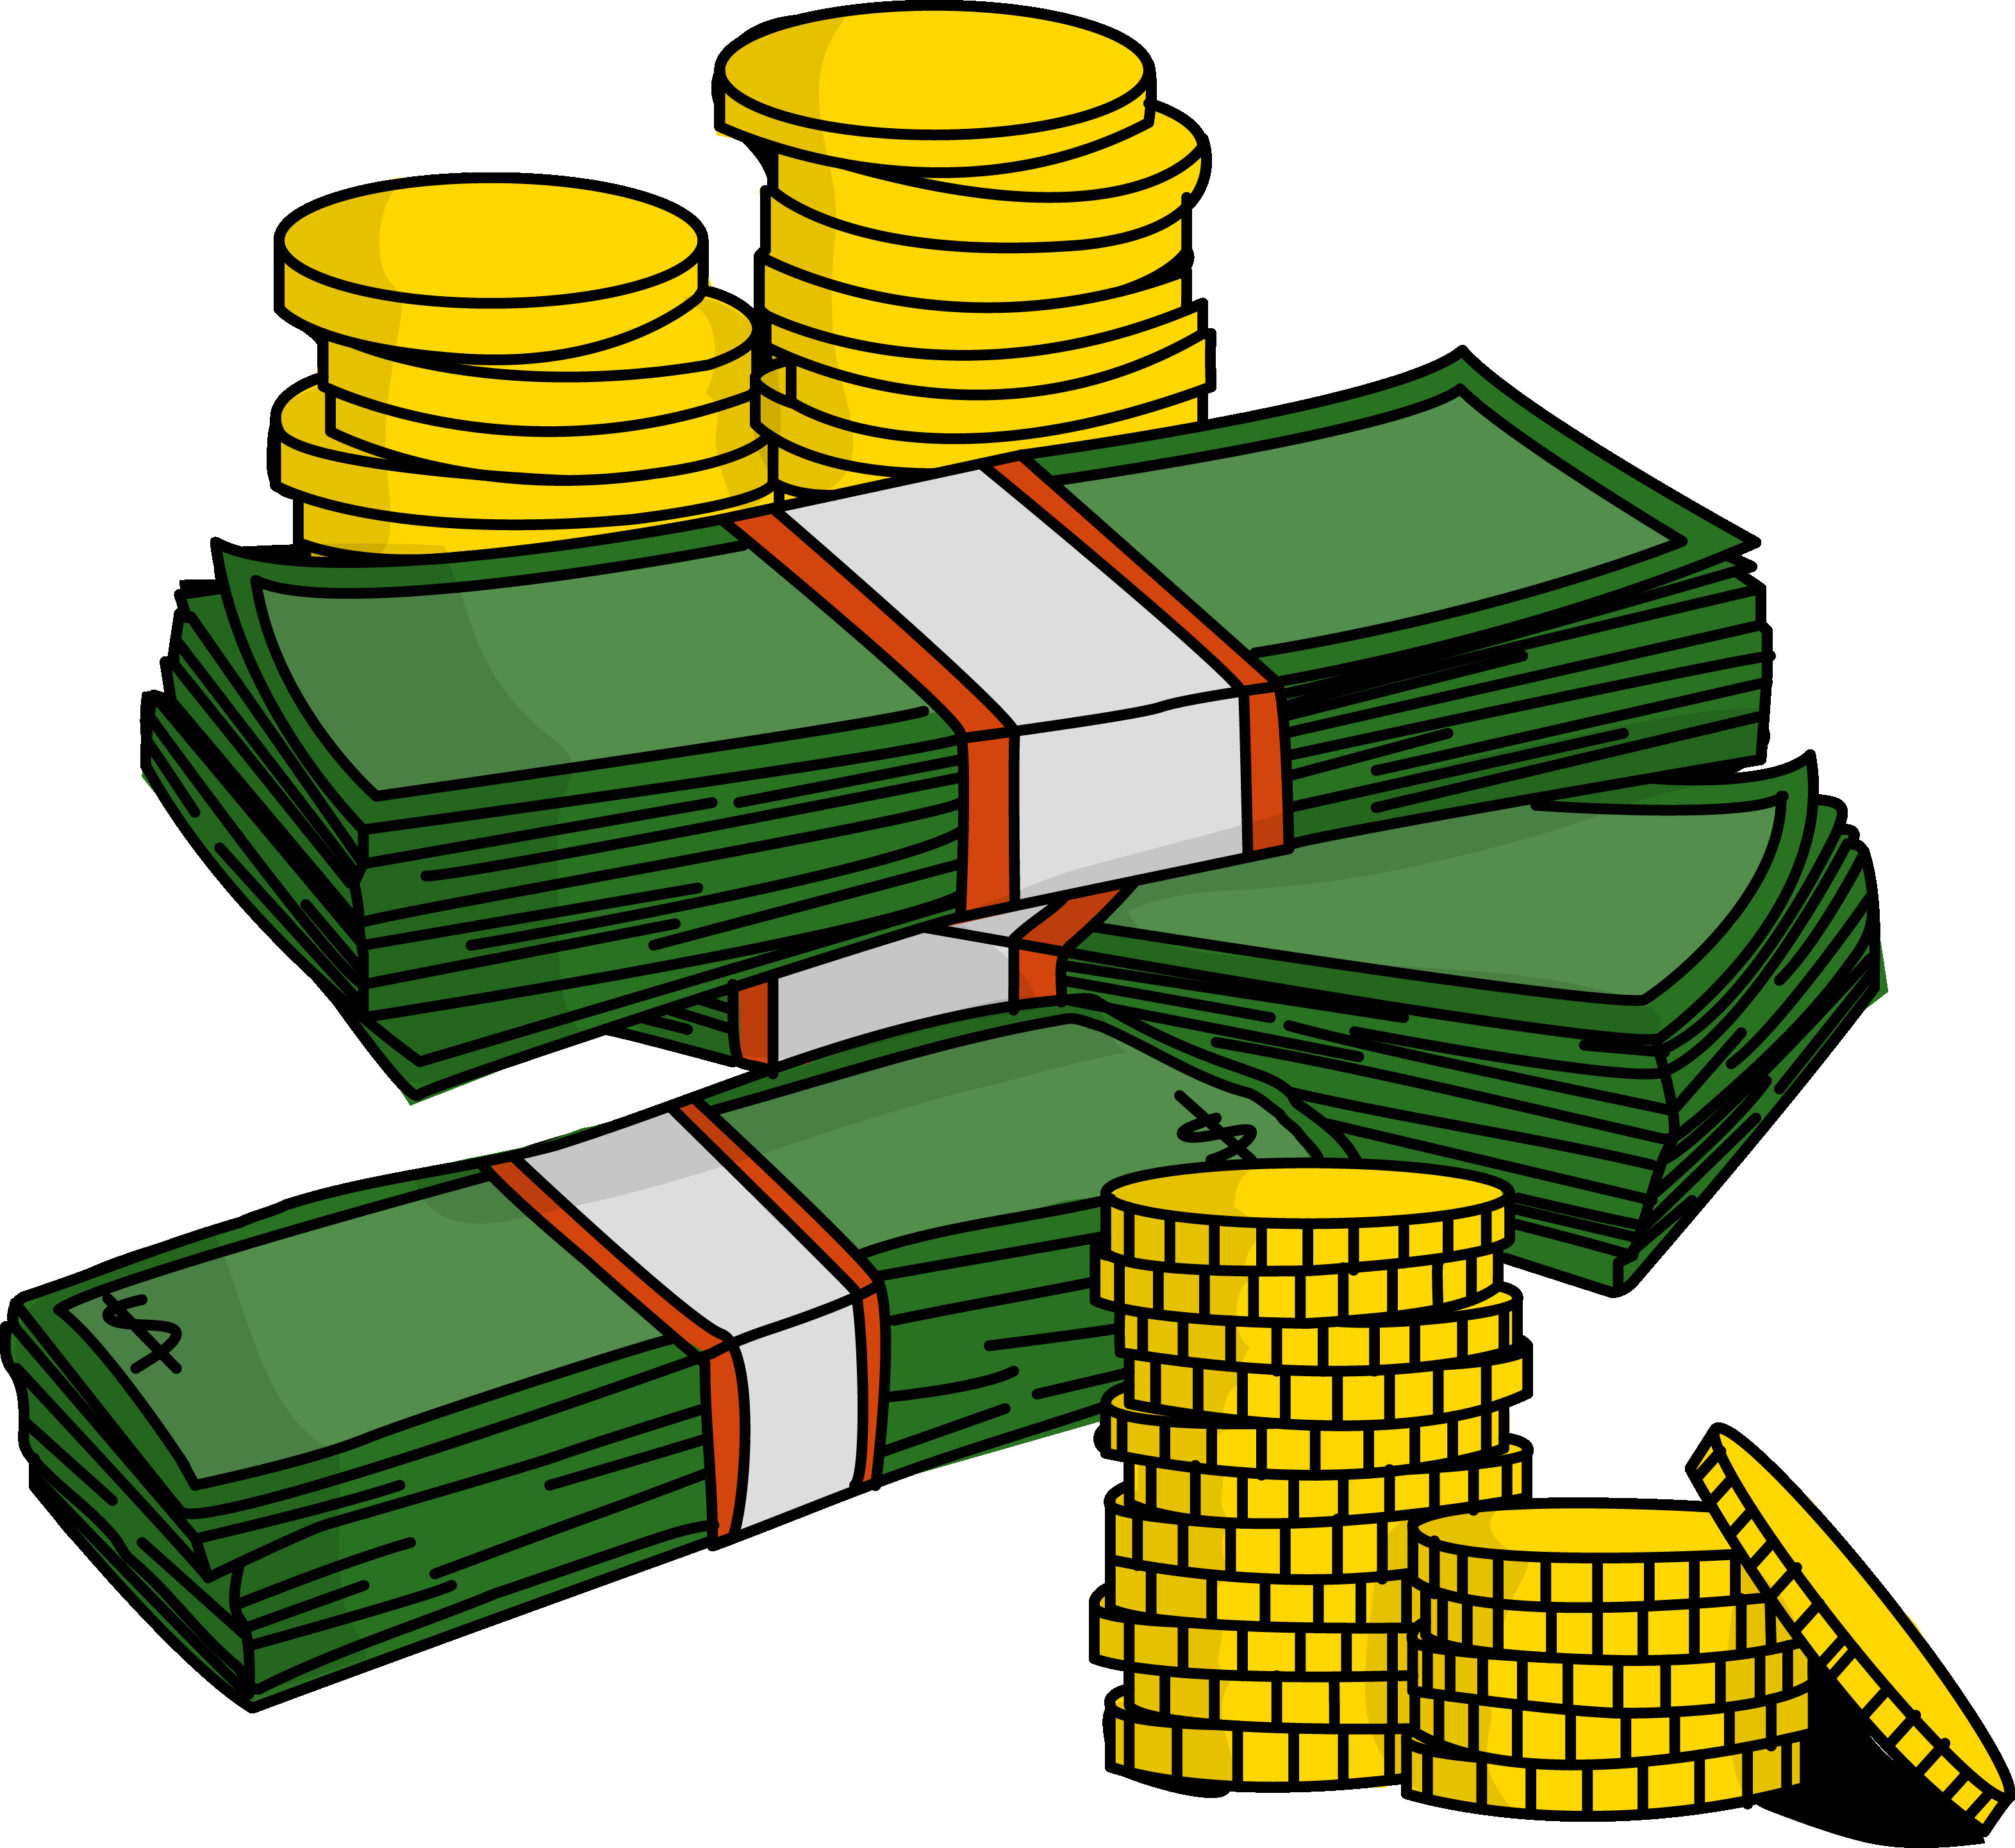 Free Clipart Of Money at GetDrawings.com.